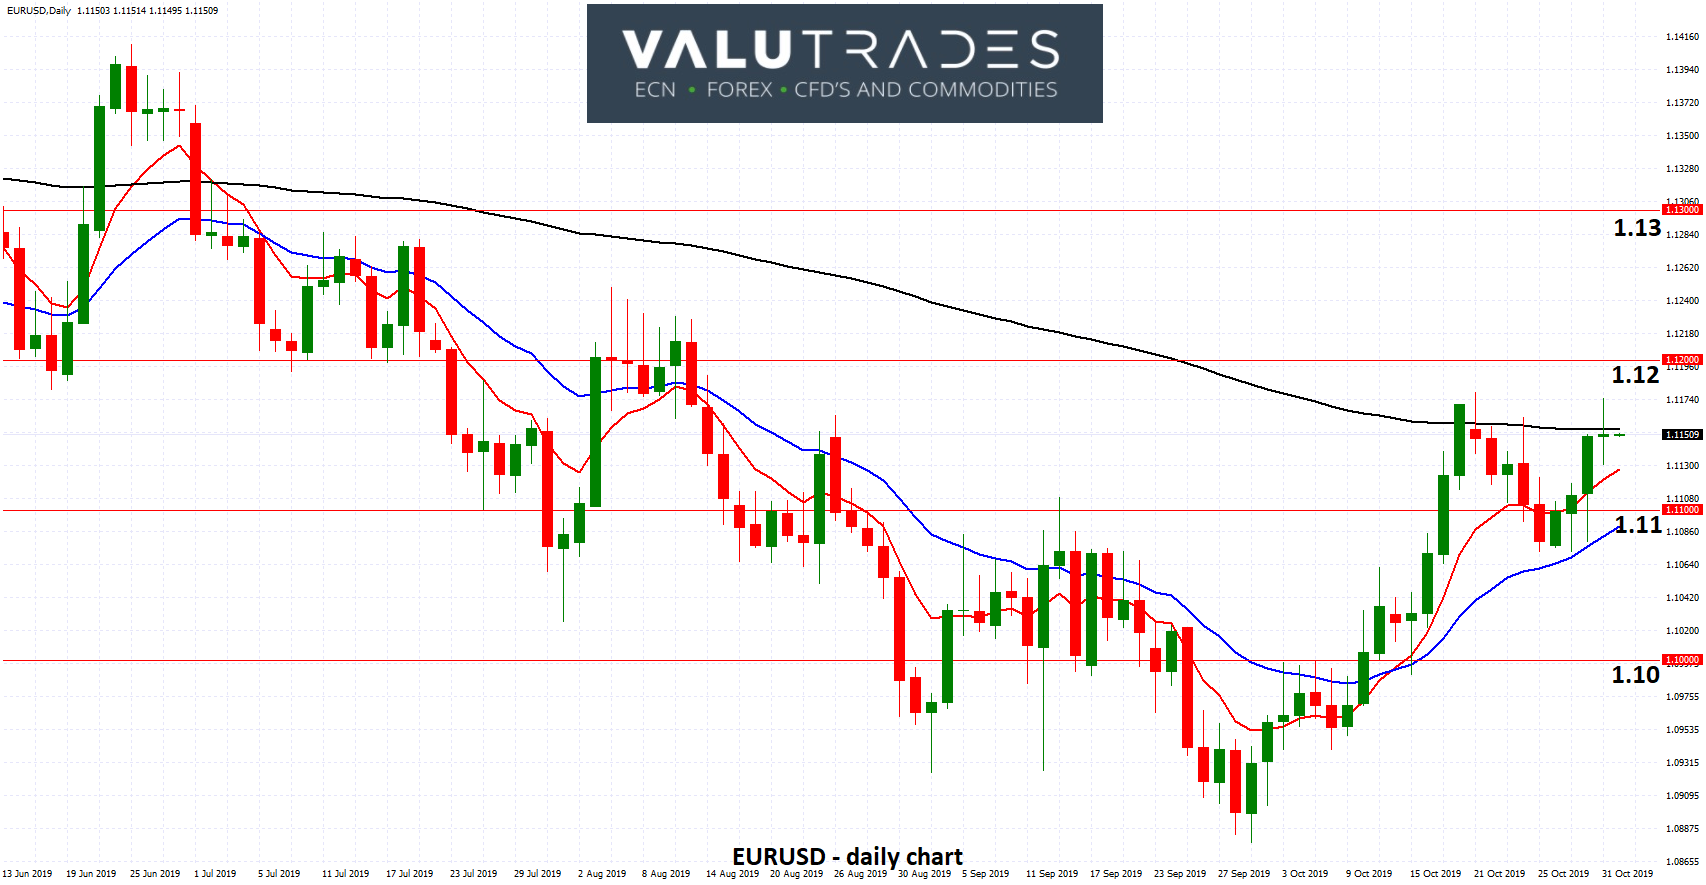 EURUSD - Settles above 1.11 as Doubts Raised over Negative Rates